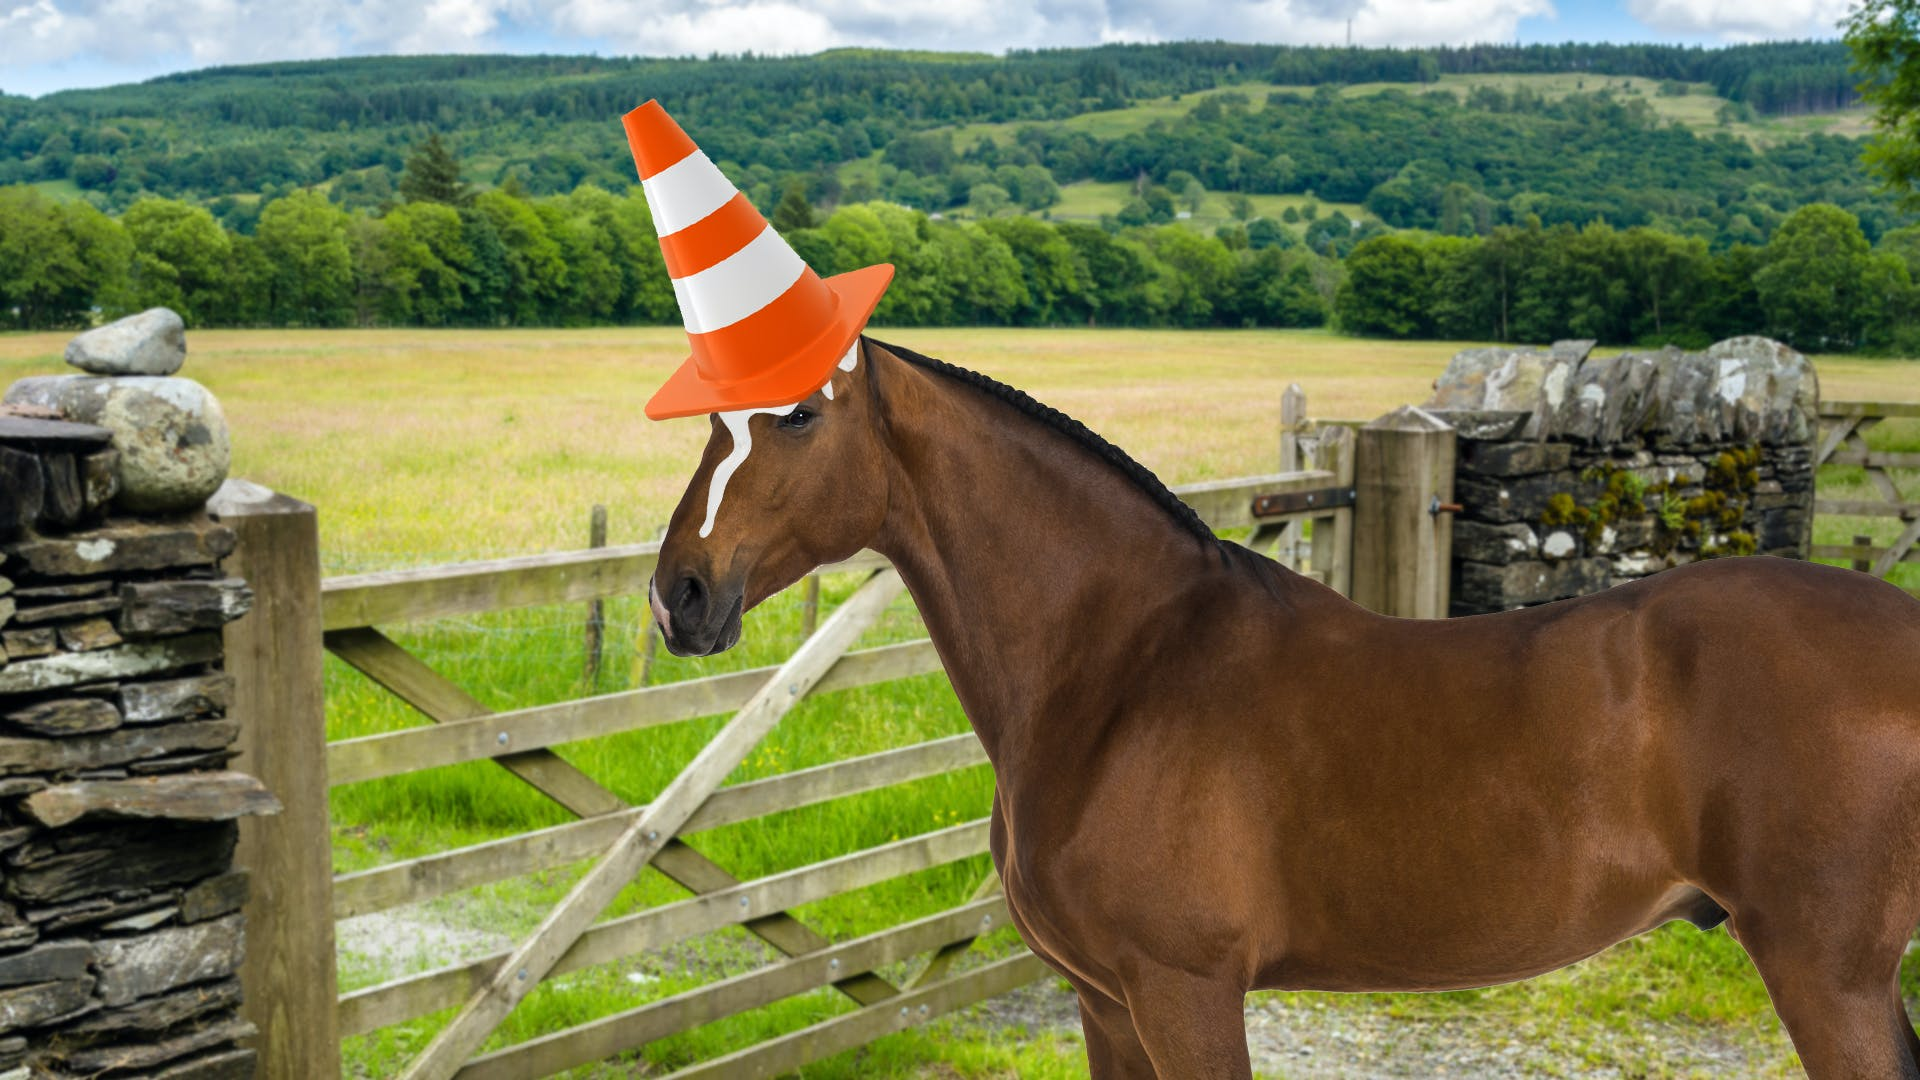 horse with a traffic cone glued to it's head